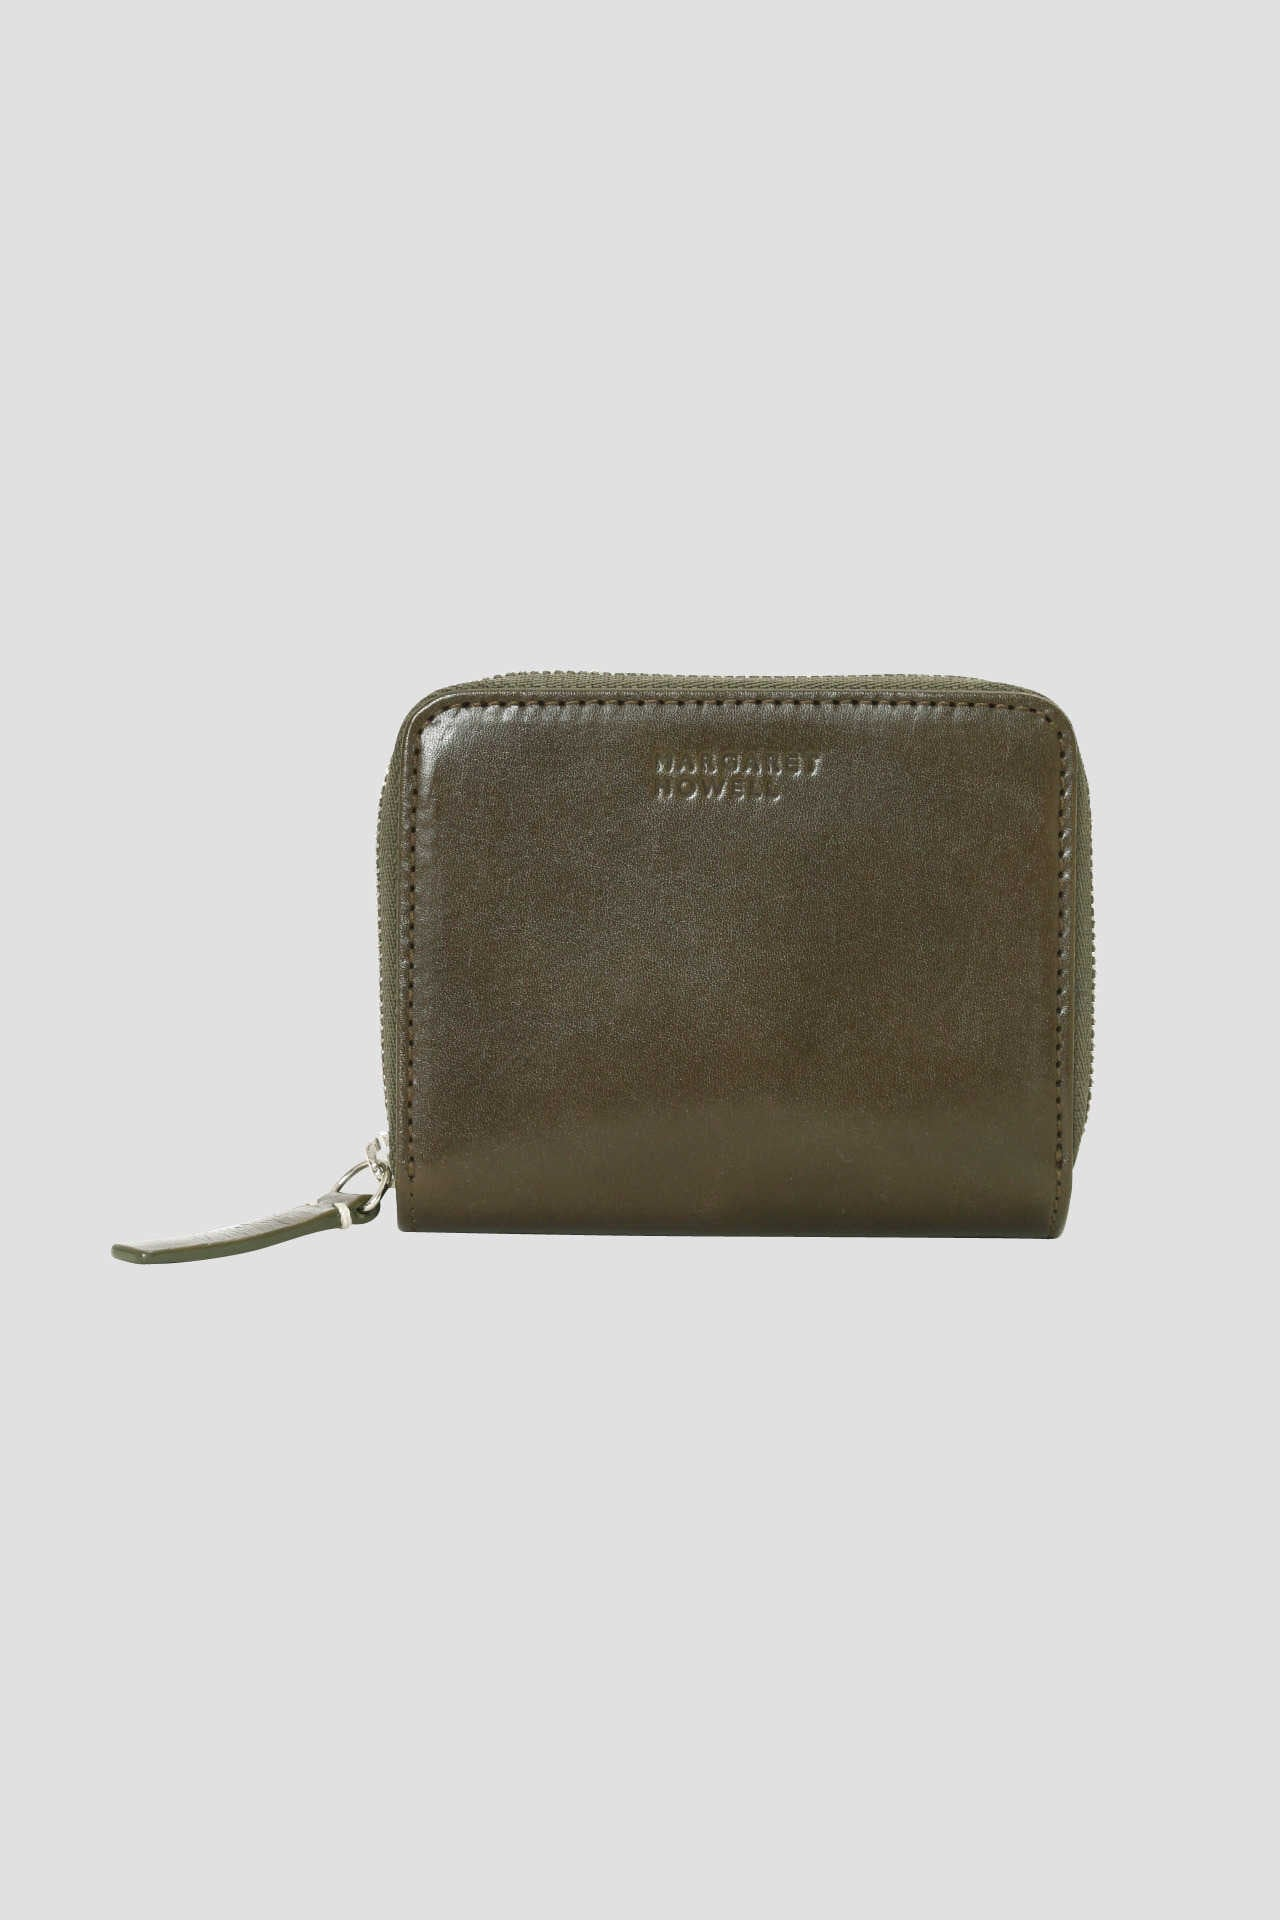 SMOOTH LEATHER WALLET6